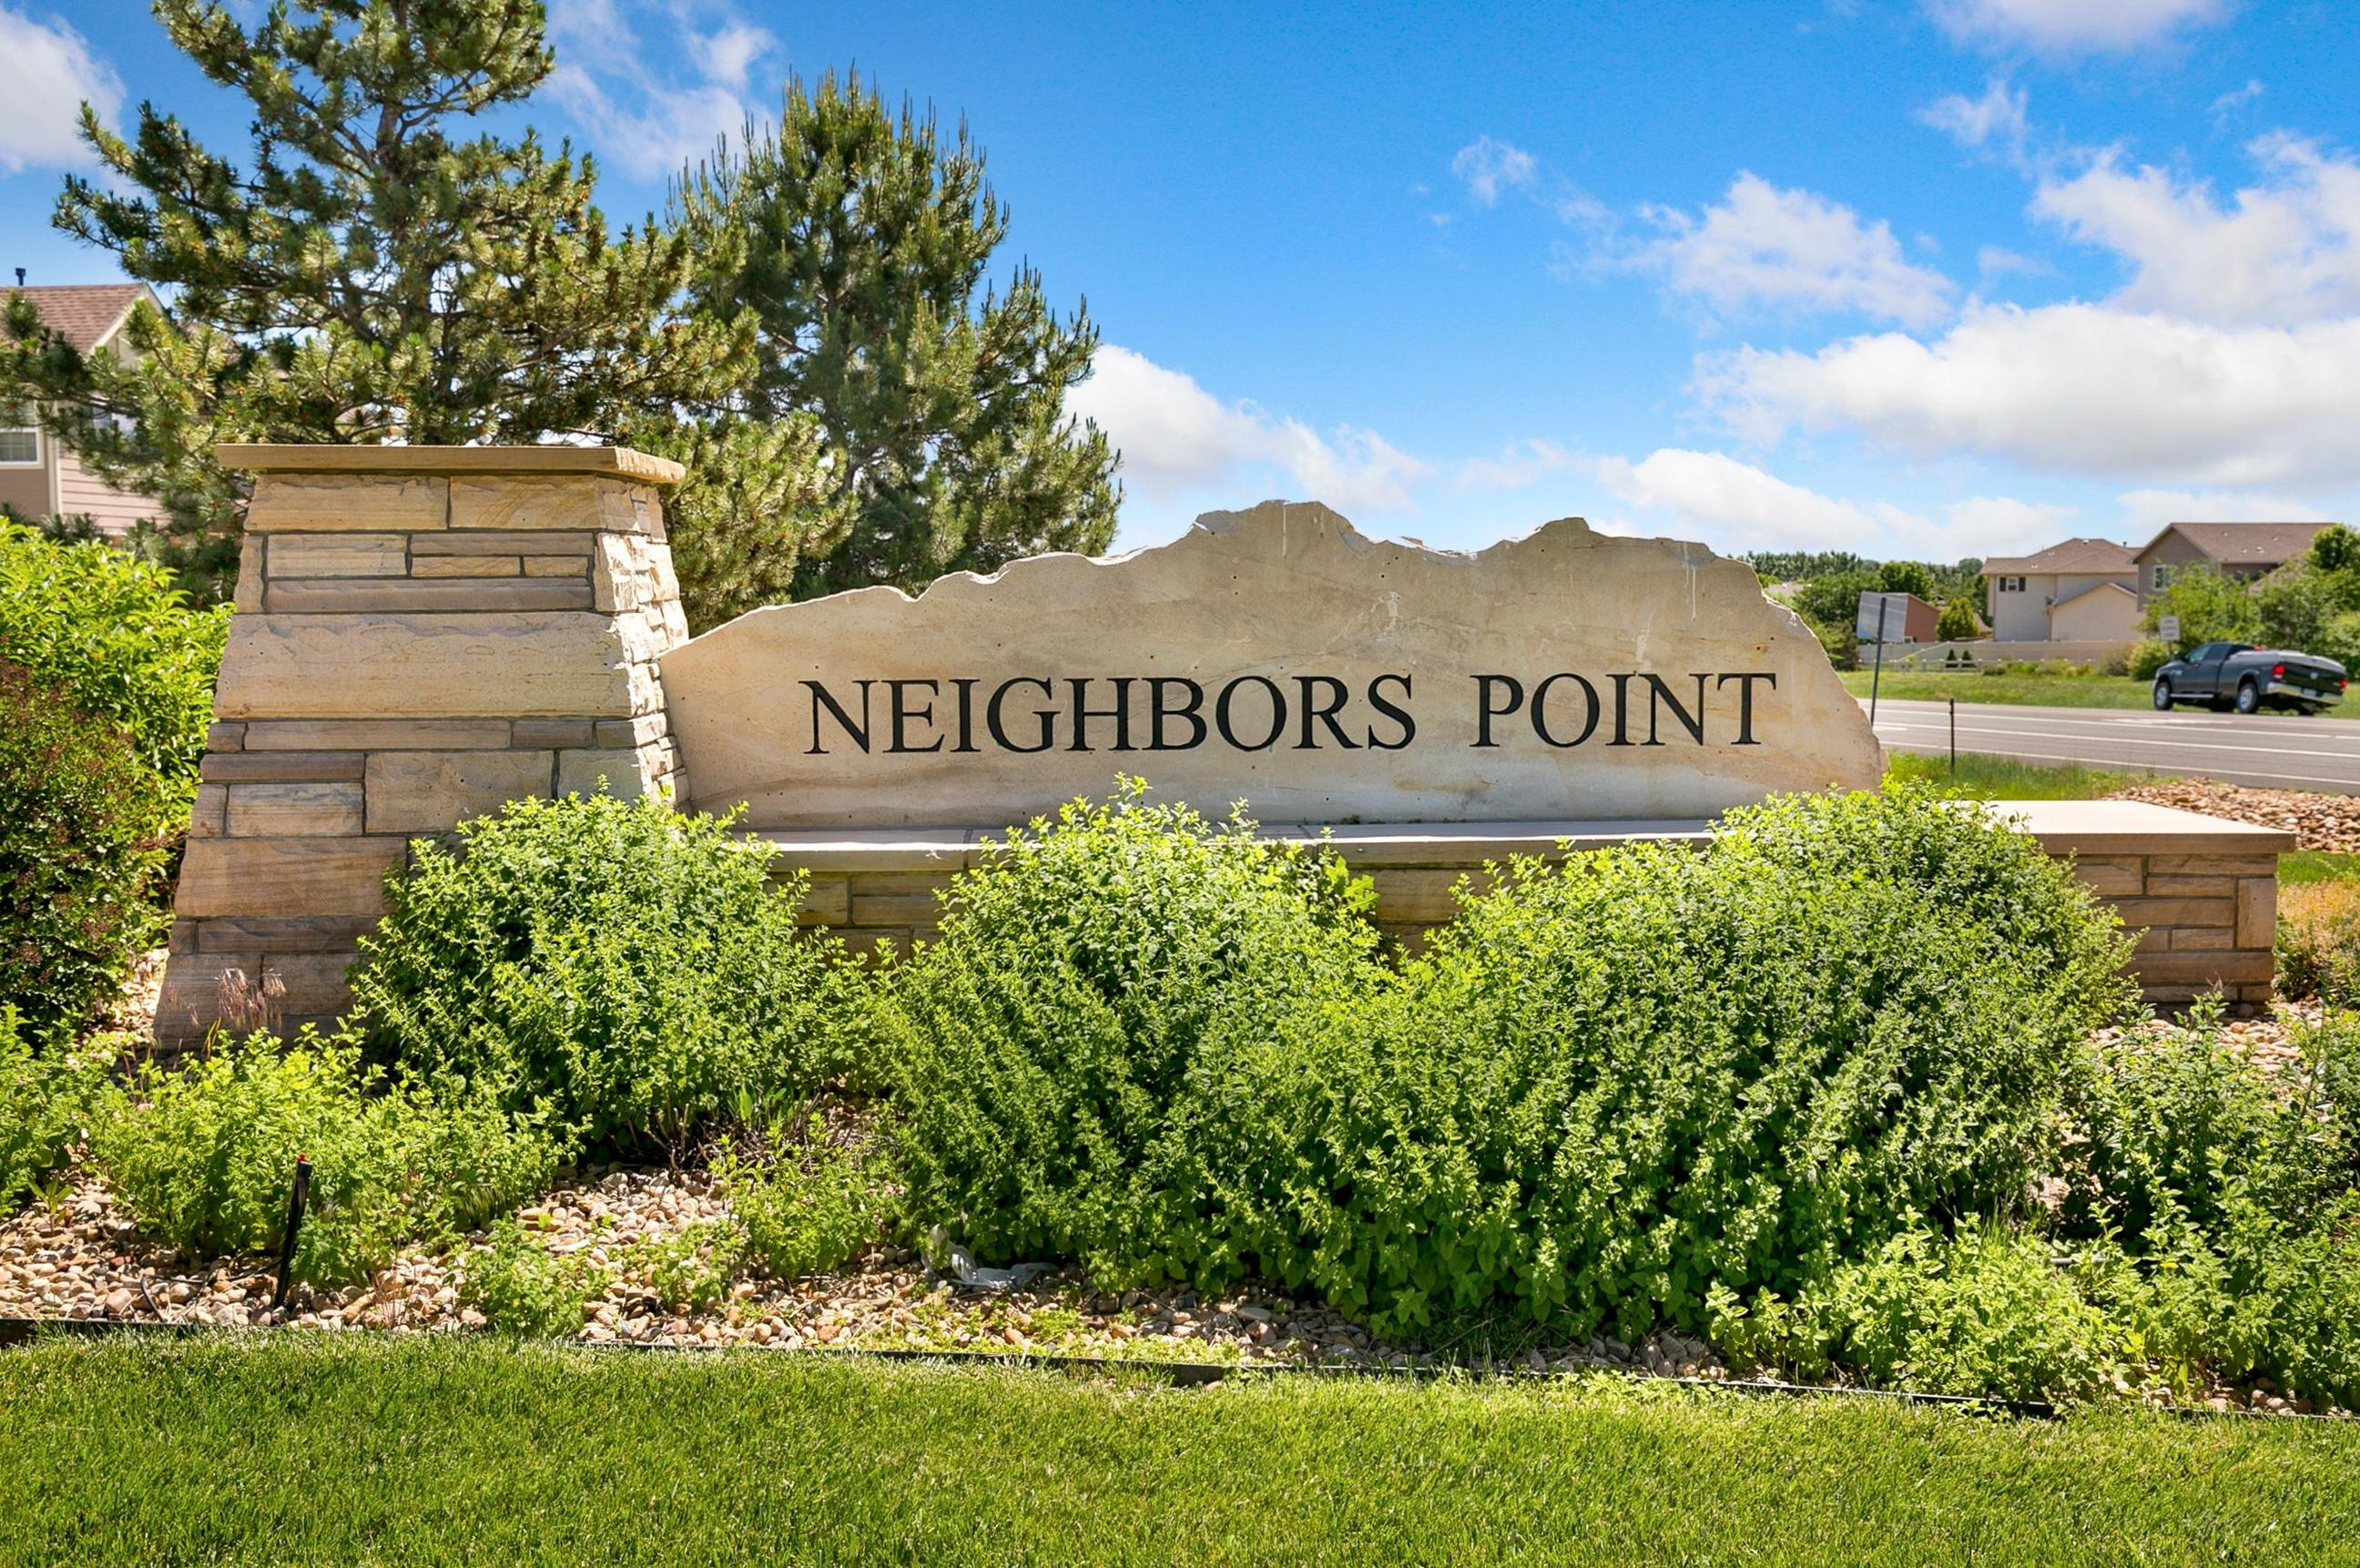 Neighbors Point